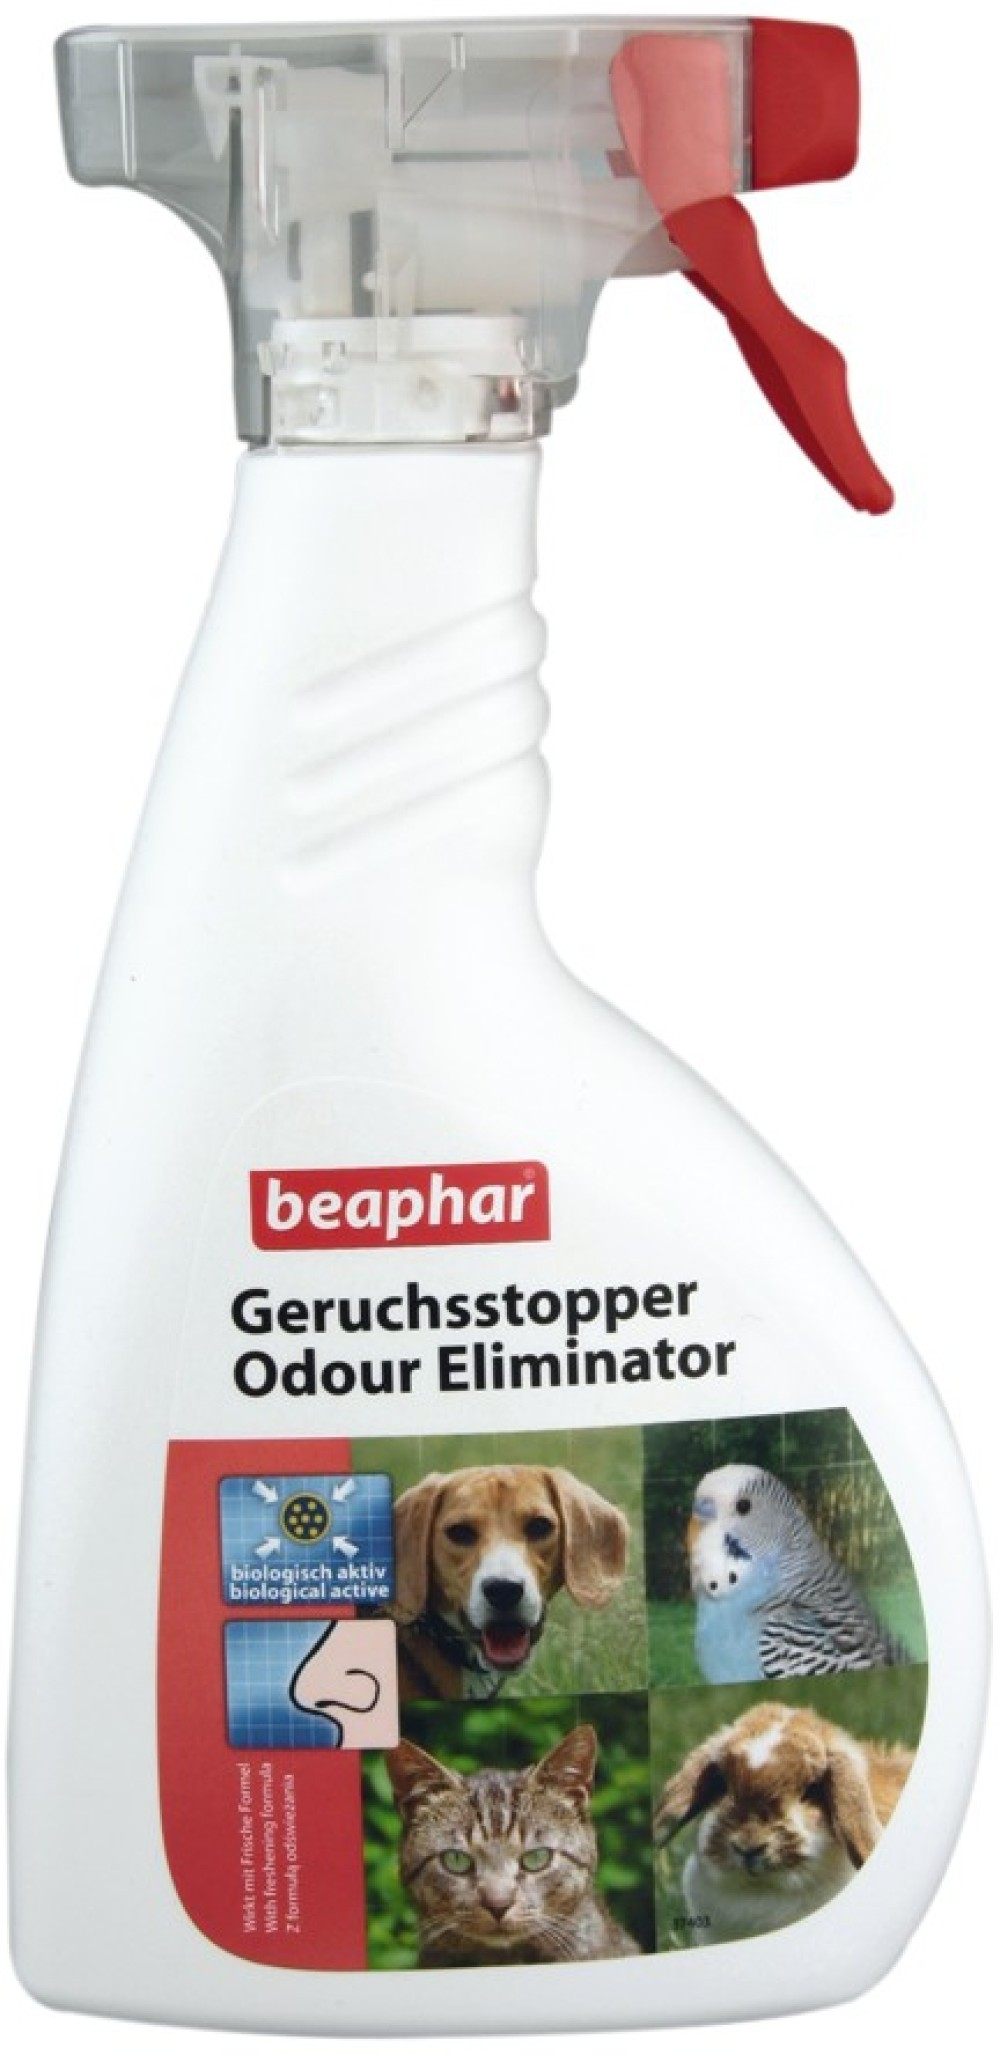 zoo/Beaphar_Odour_Killer_spray